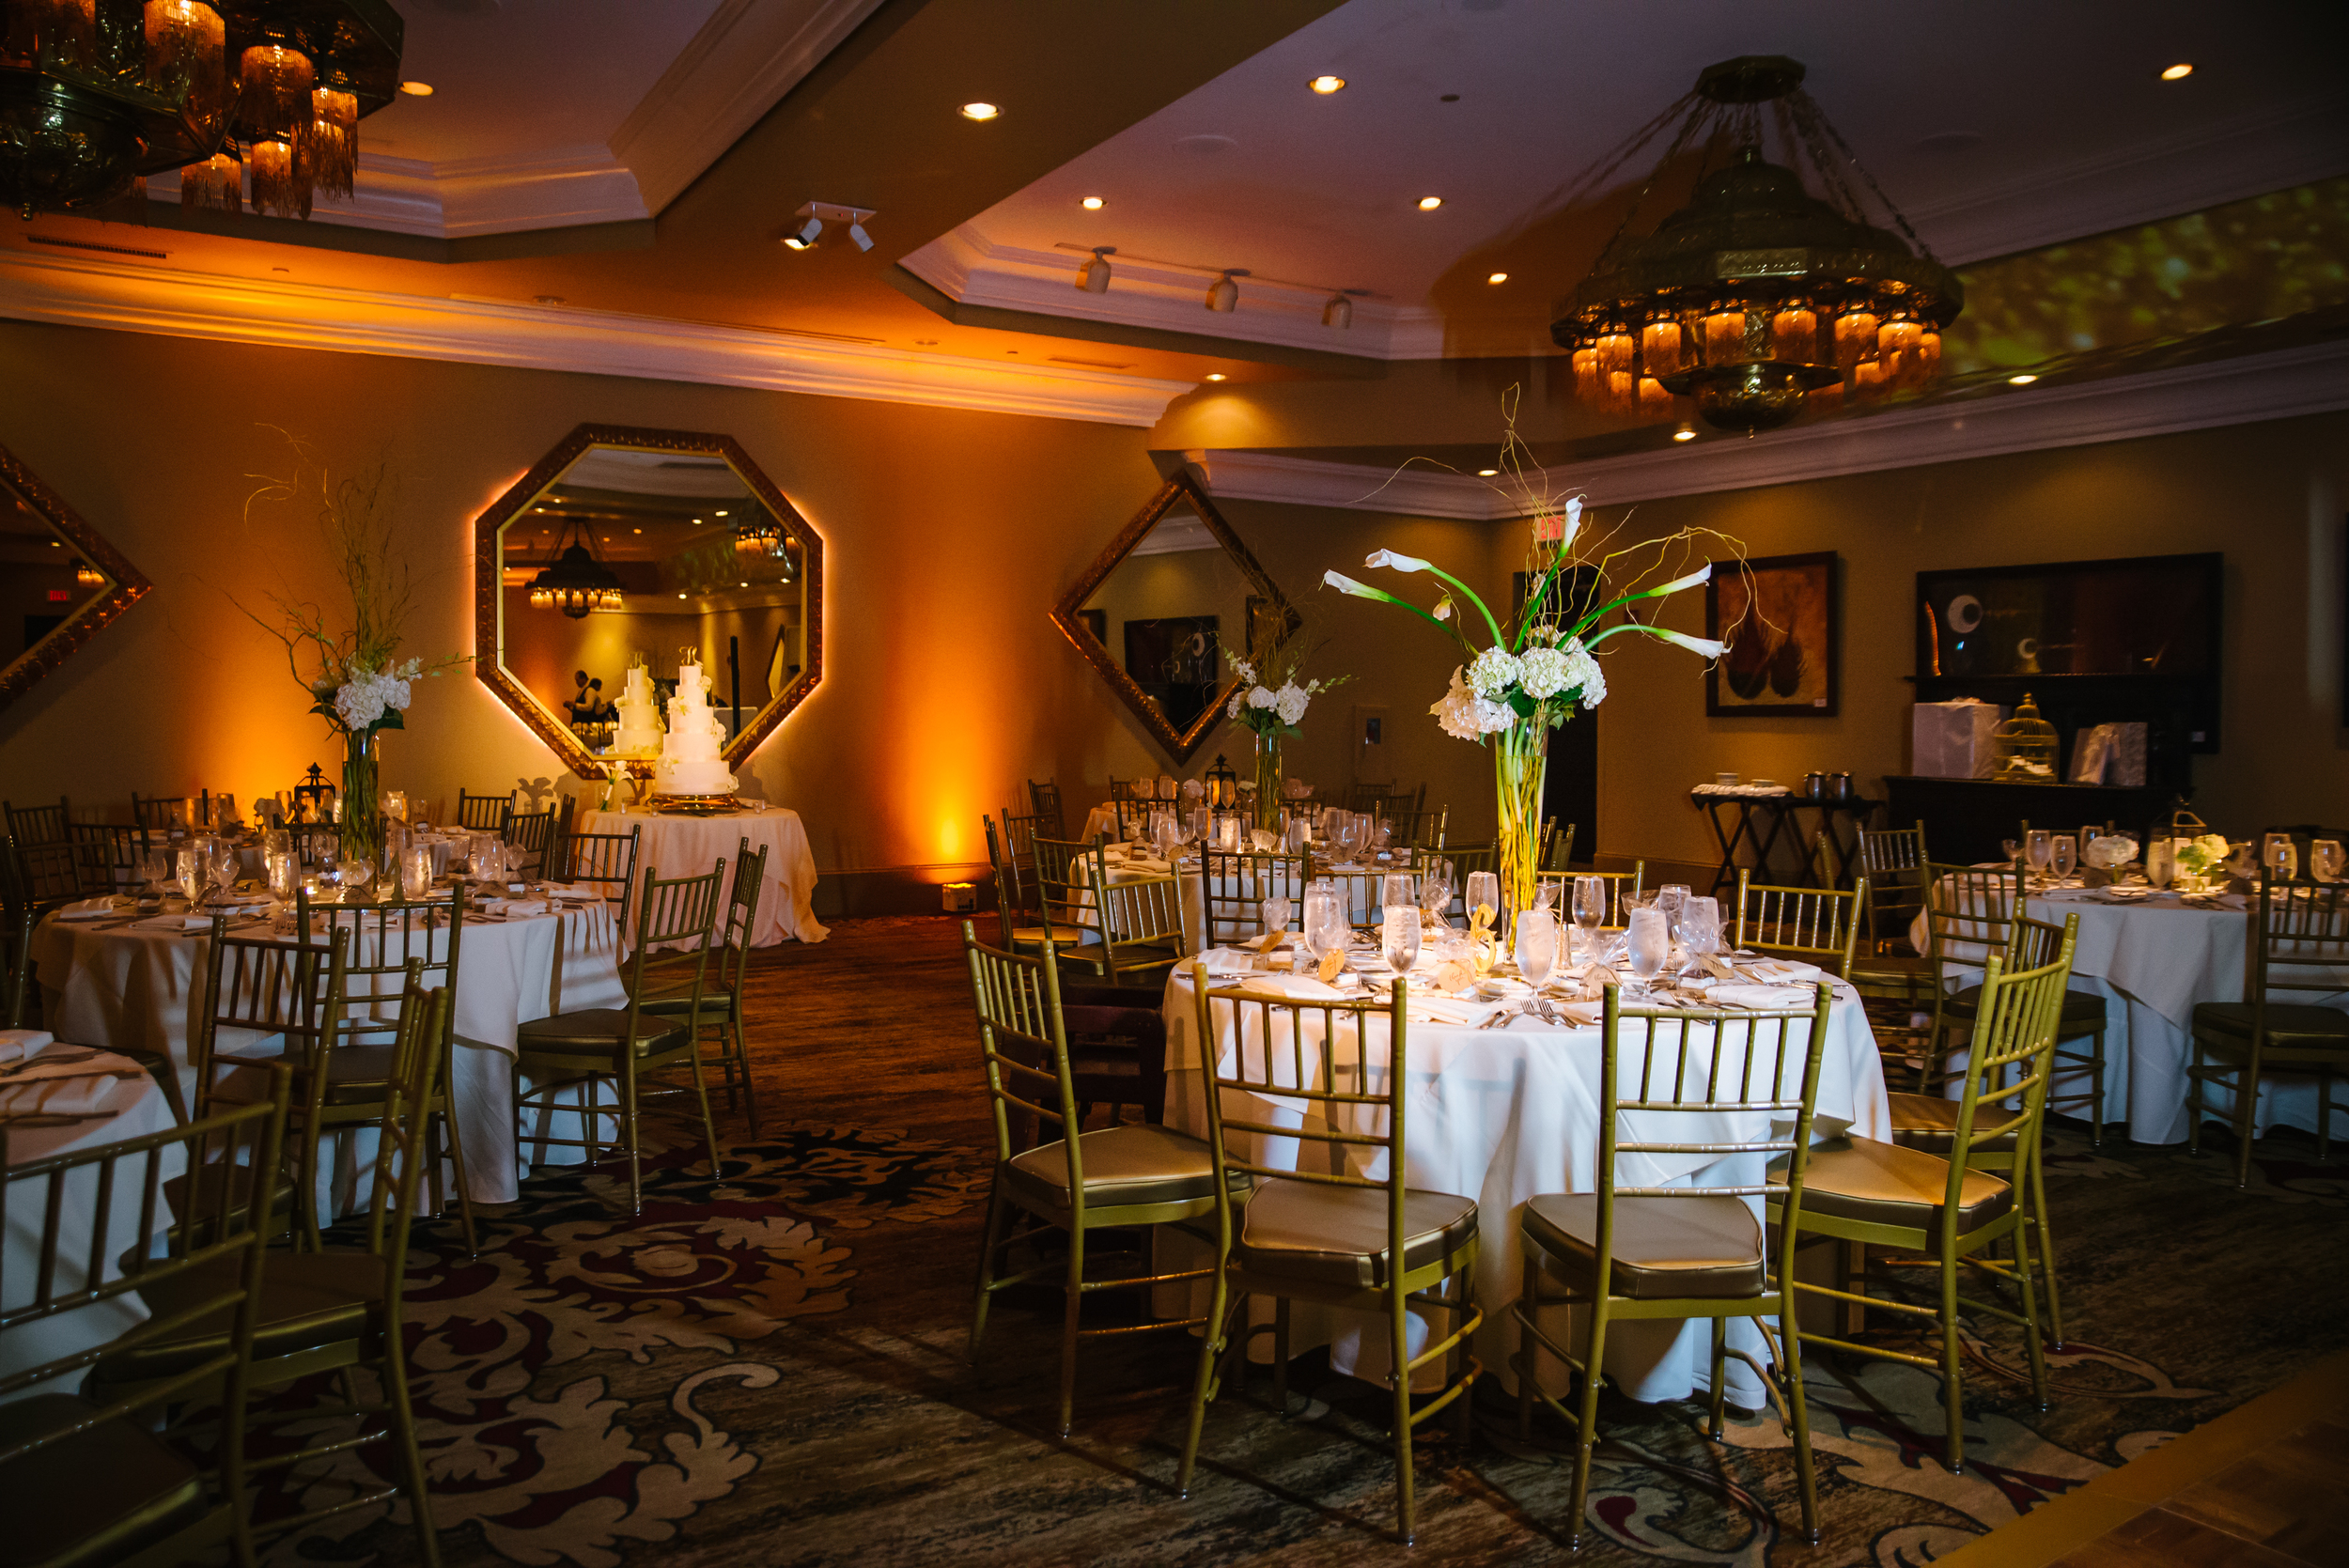 tampa-wedding-photographer-casa-monica-st-saint-augustine-florida-reception-table-setting-luxury-formal-gold